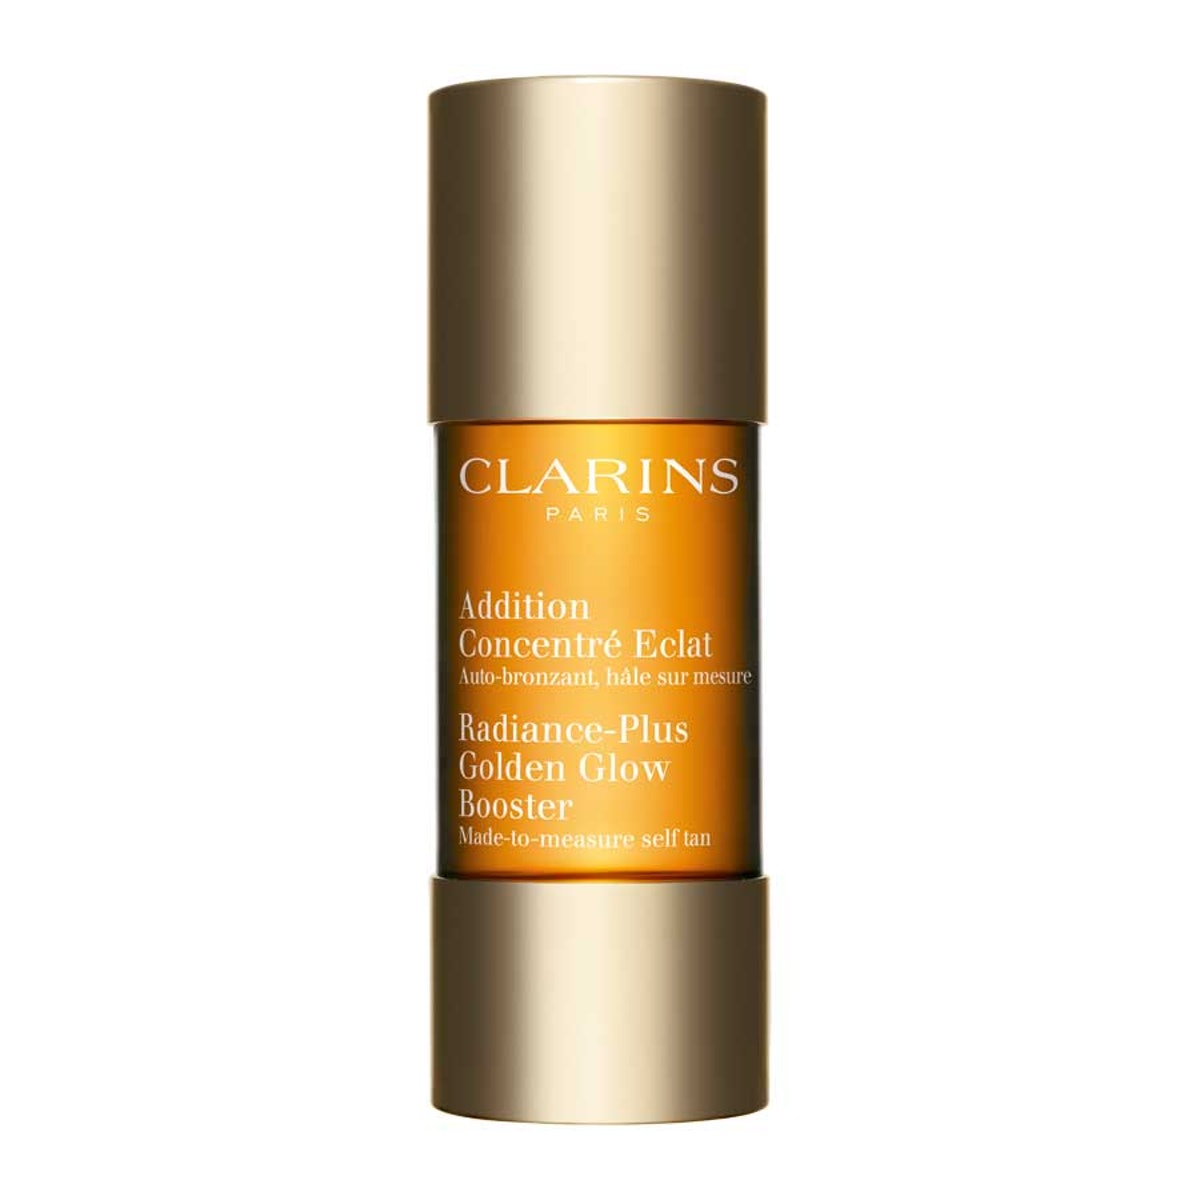 Clarins Sunless Tanner